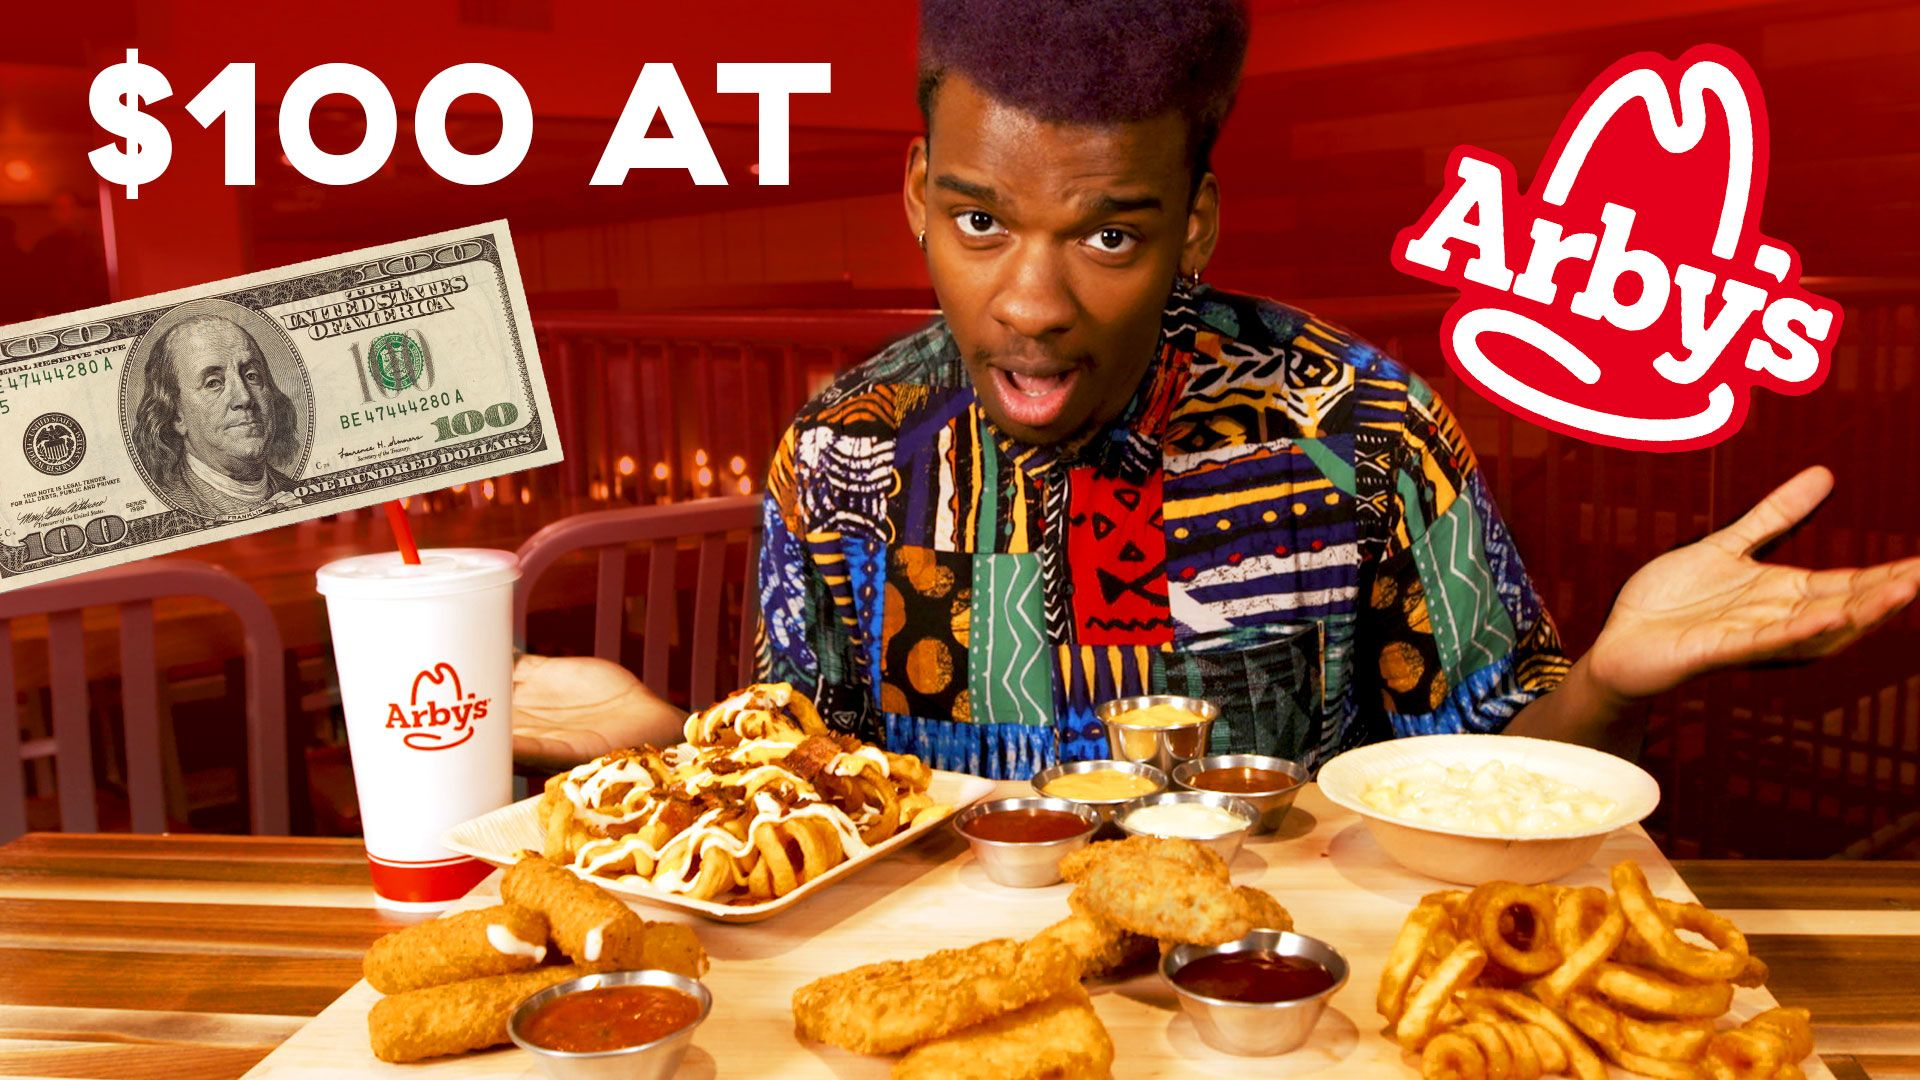 We Sent Someone To Arby's With $100—Here's What He Bought